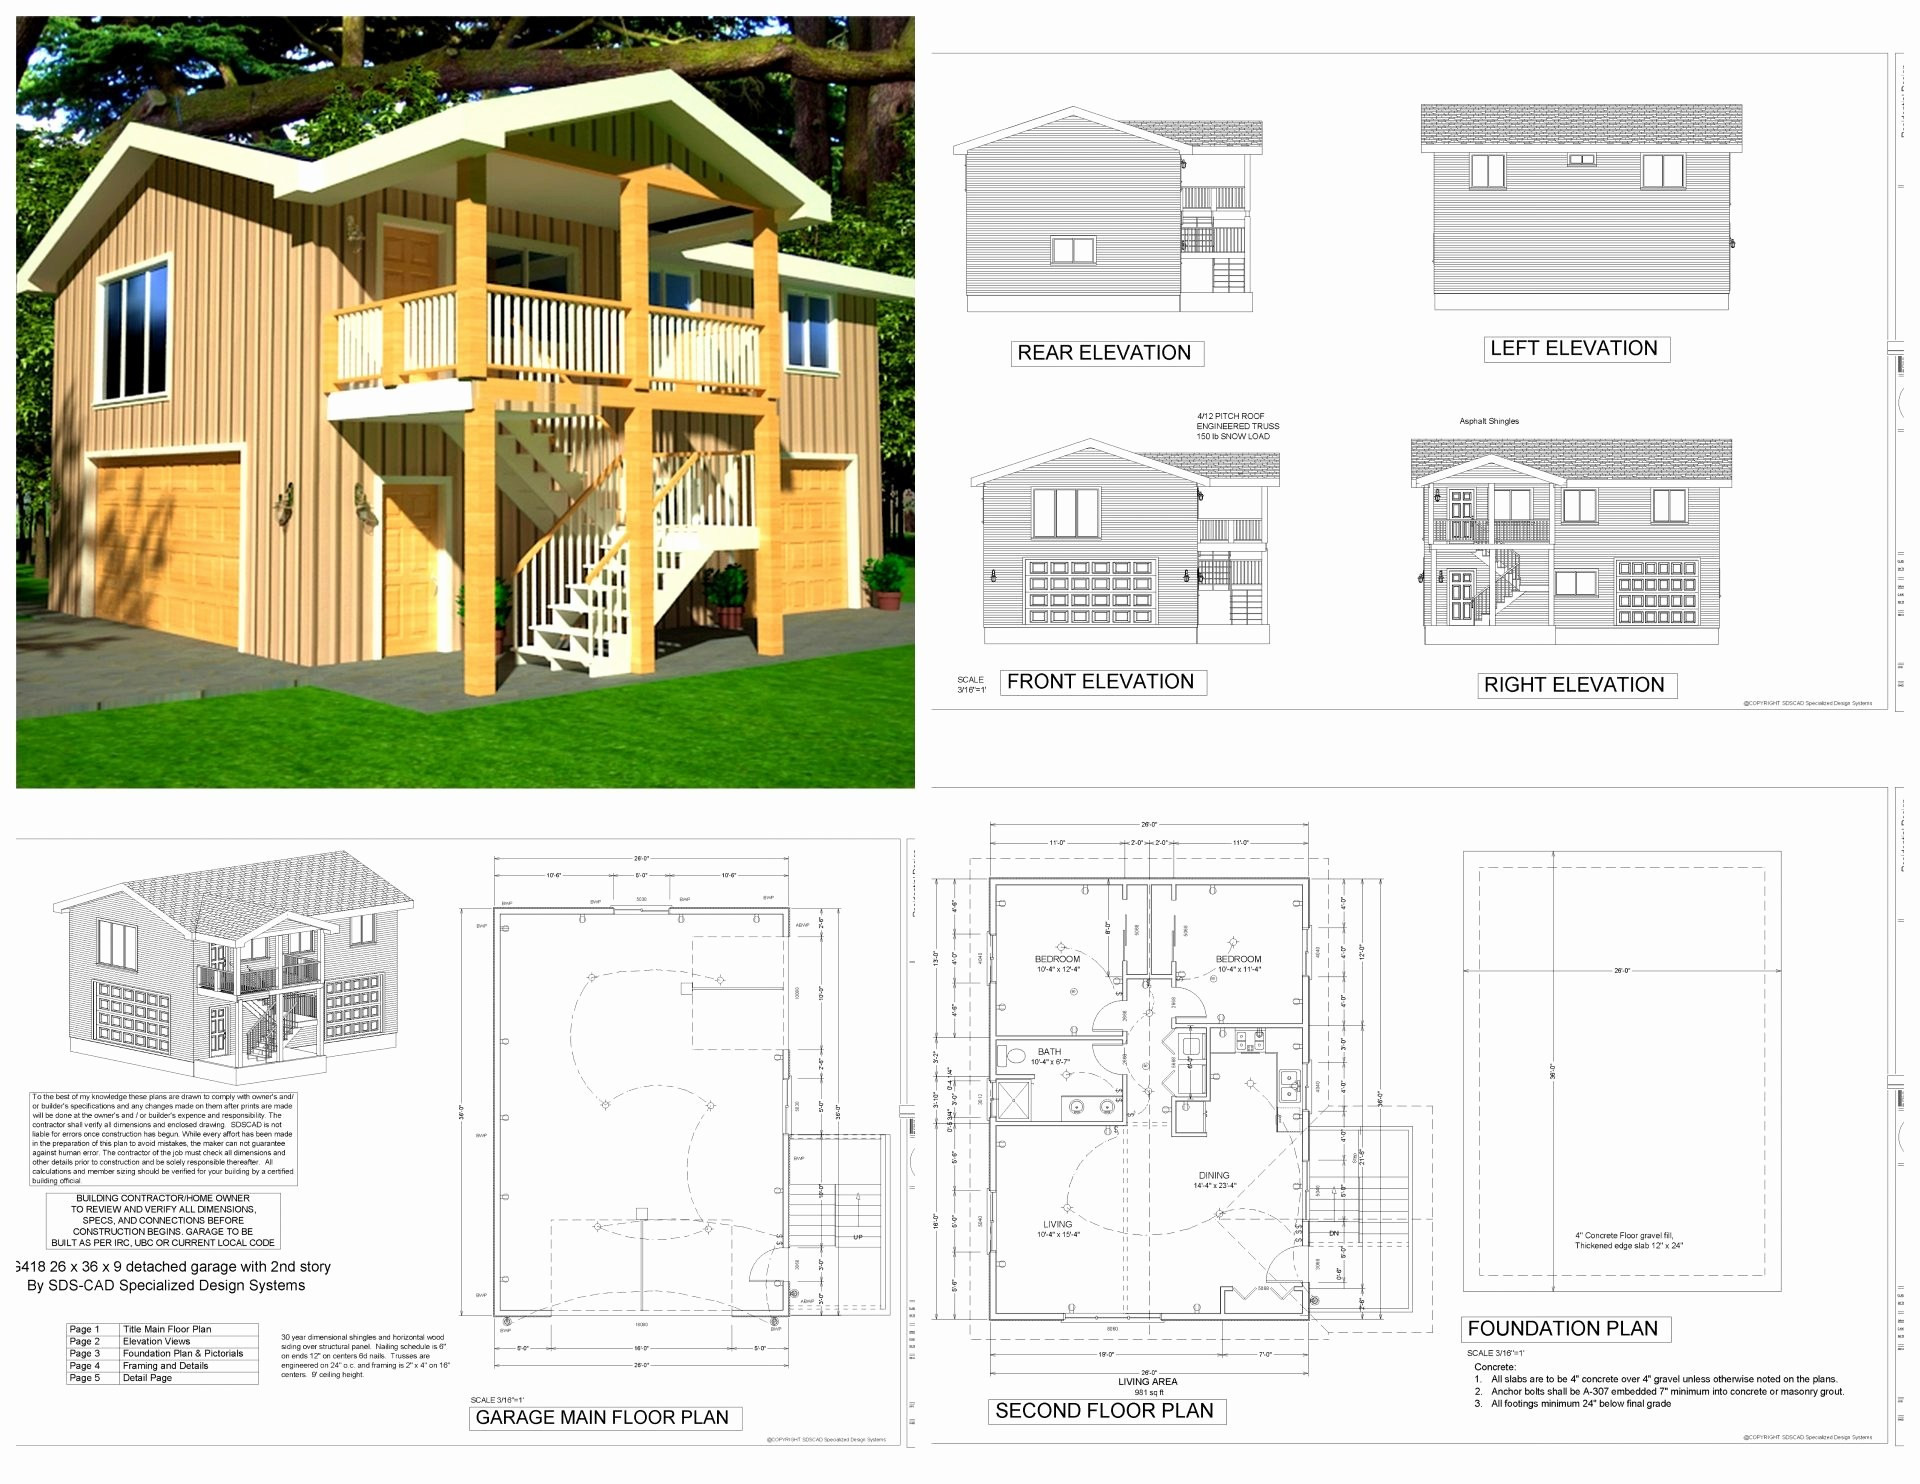 hardwood flooring nails home depot of 23 luxury dog houses at home depot pisobanko com throughout dog houses at home depot best of home depot dog house plans with inspiration luxury regarding